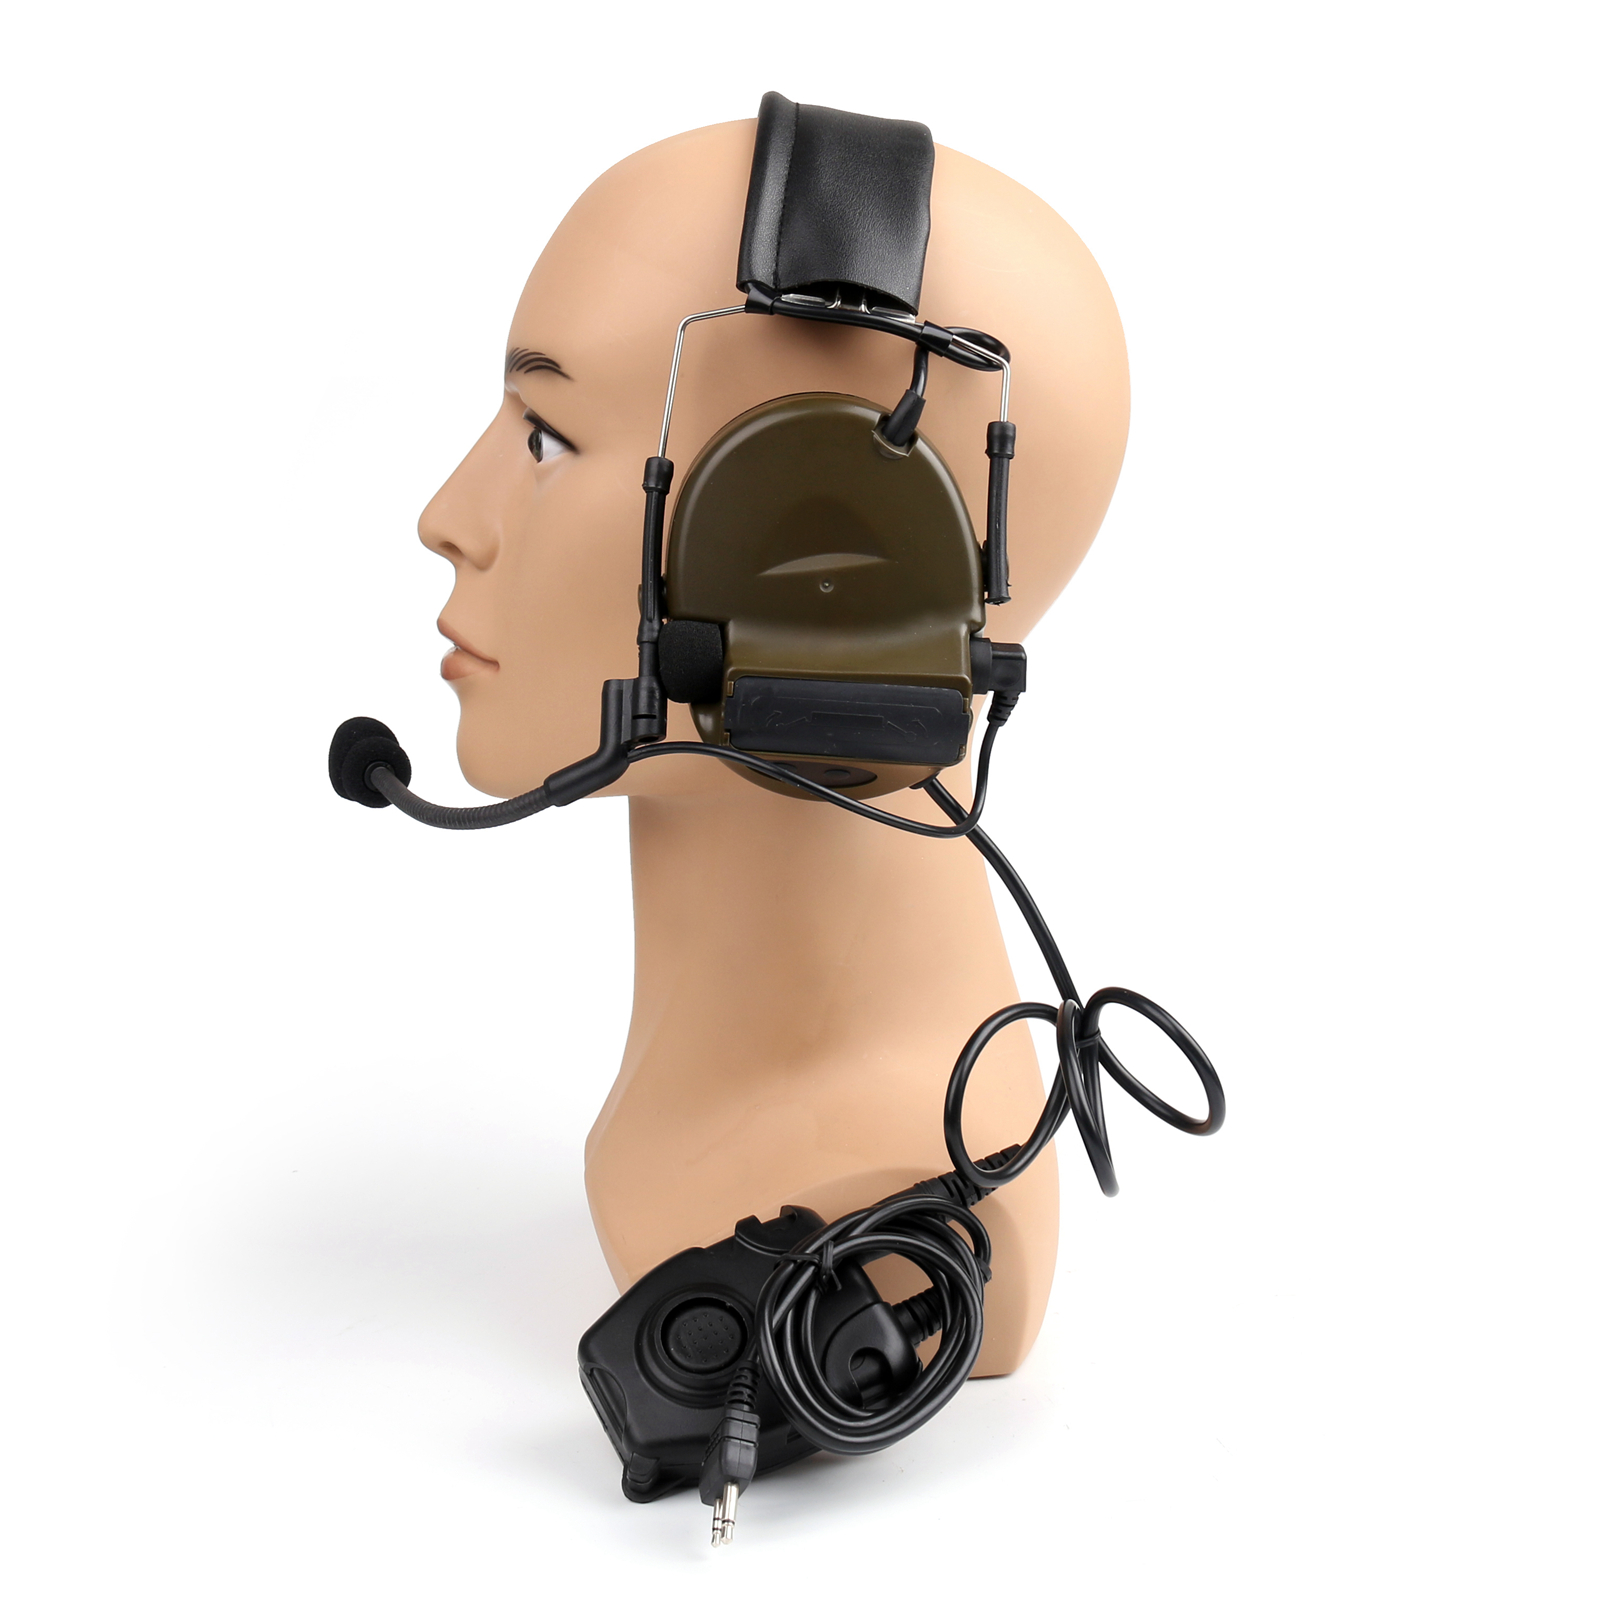 Watch moreover Peltor Mt17h682fb 38 Peltor  tac Active Listening Hearing Protector also 3mtm Peltortm Wireless Series Tactical Sporttm Headset With Bluetoothr Wireless Technology furthermore 170960219225 additionally Od electronics anprc148. on peltor radio headset